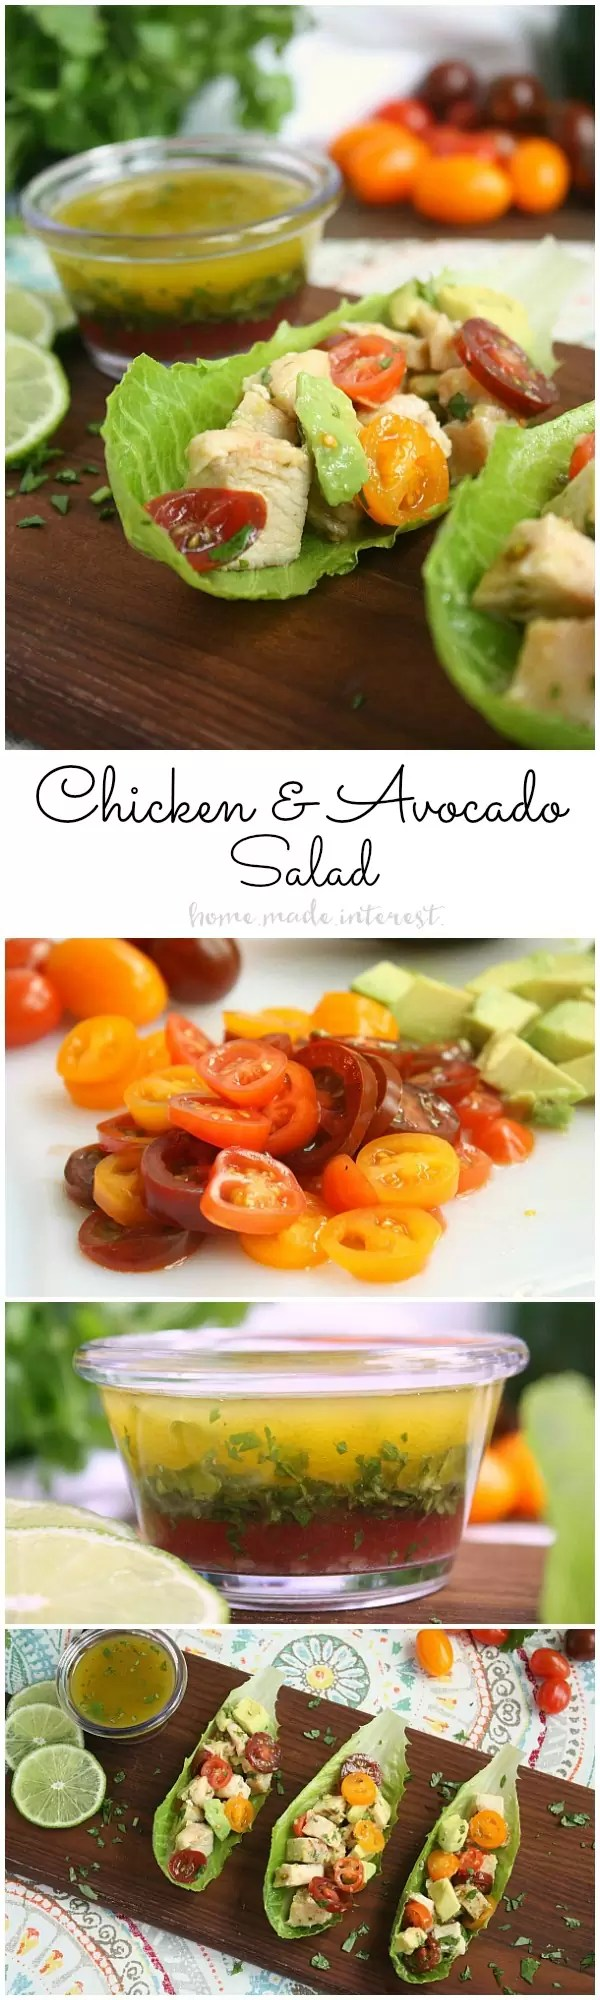 If you want a light, low carb lunch option this chicken and avocado salad is one of my favorites. Grilled, or baked chicken, fresh avocado and tomatoes, and a light lime cilantro vinaigrette, in a simple lettuce wrap makes the perfect lunch.